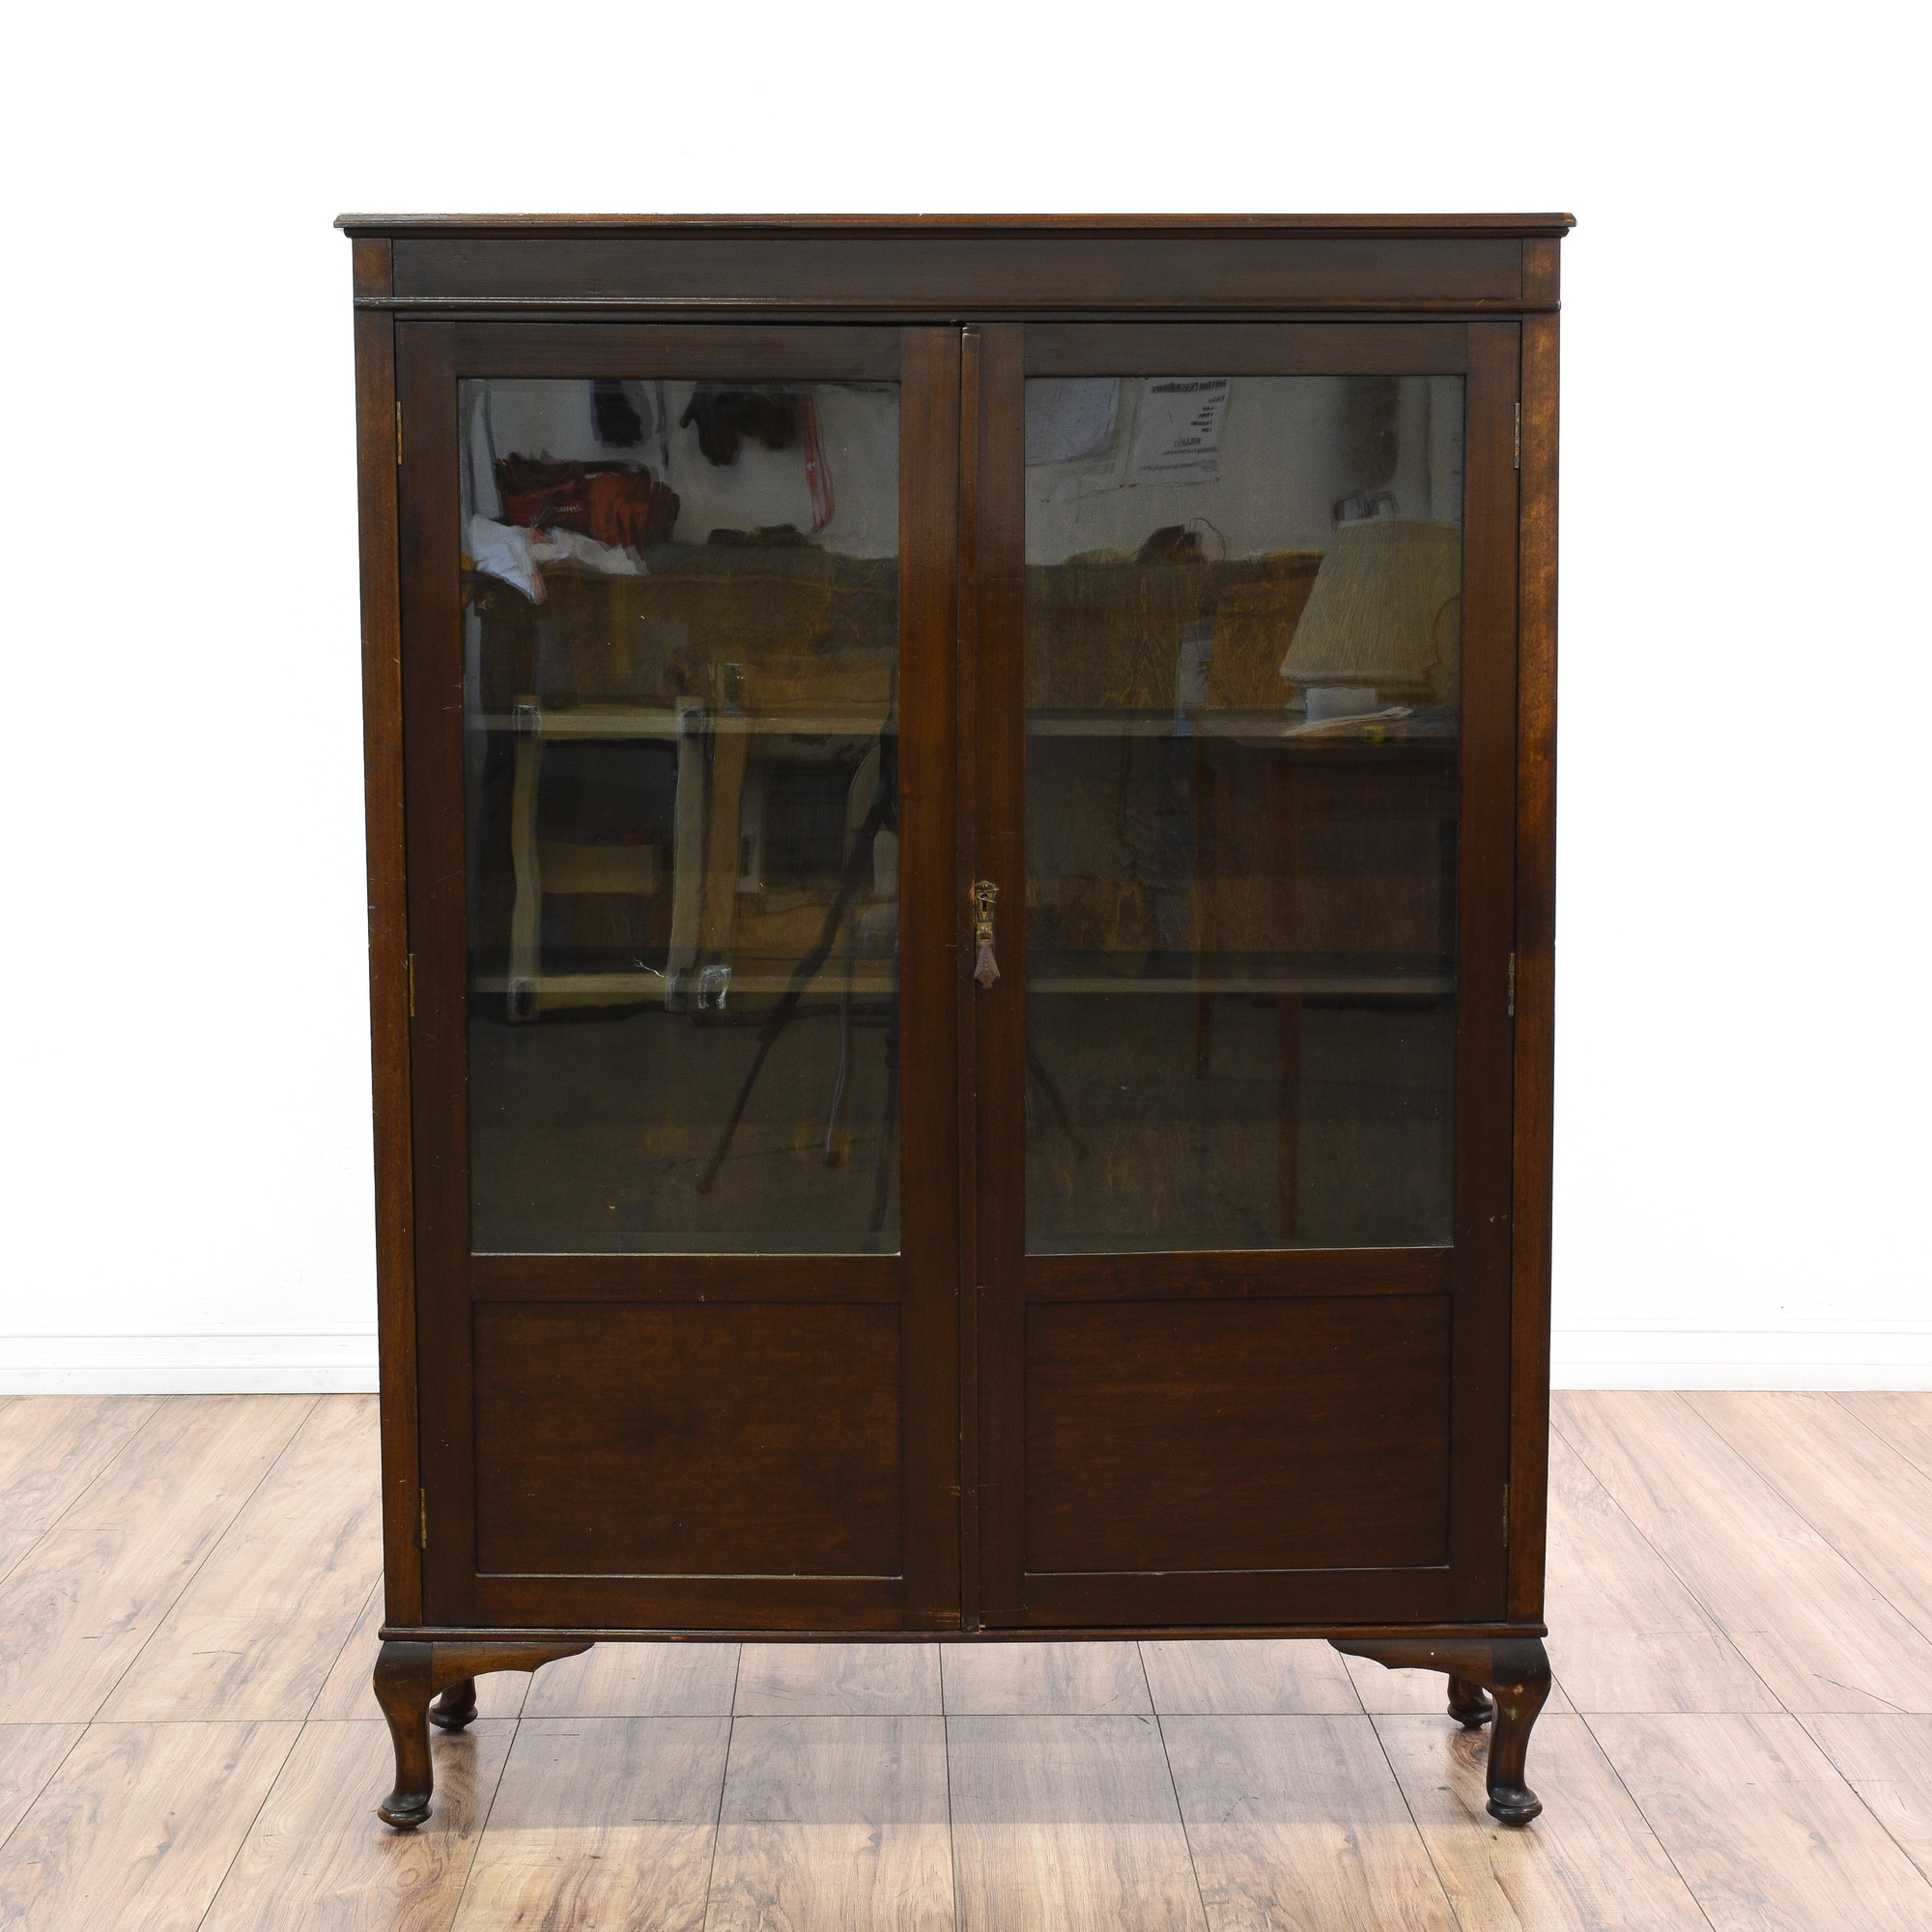 #885A43 Dark Cherry Glass Front Display Case Cabinet Loveseat  with 2000x2000 px of Recommended Glass Display Cases San Diego 20002000 save image @ avoidforclosure.info